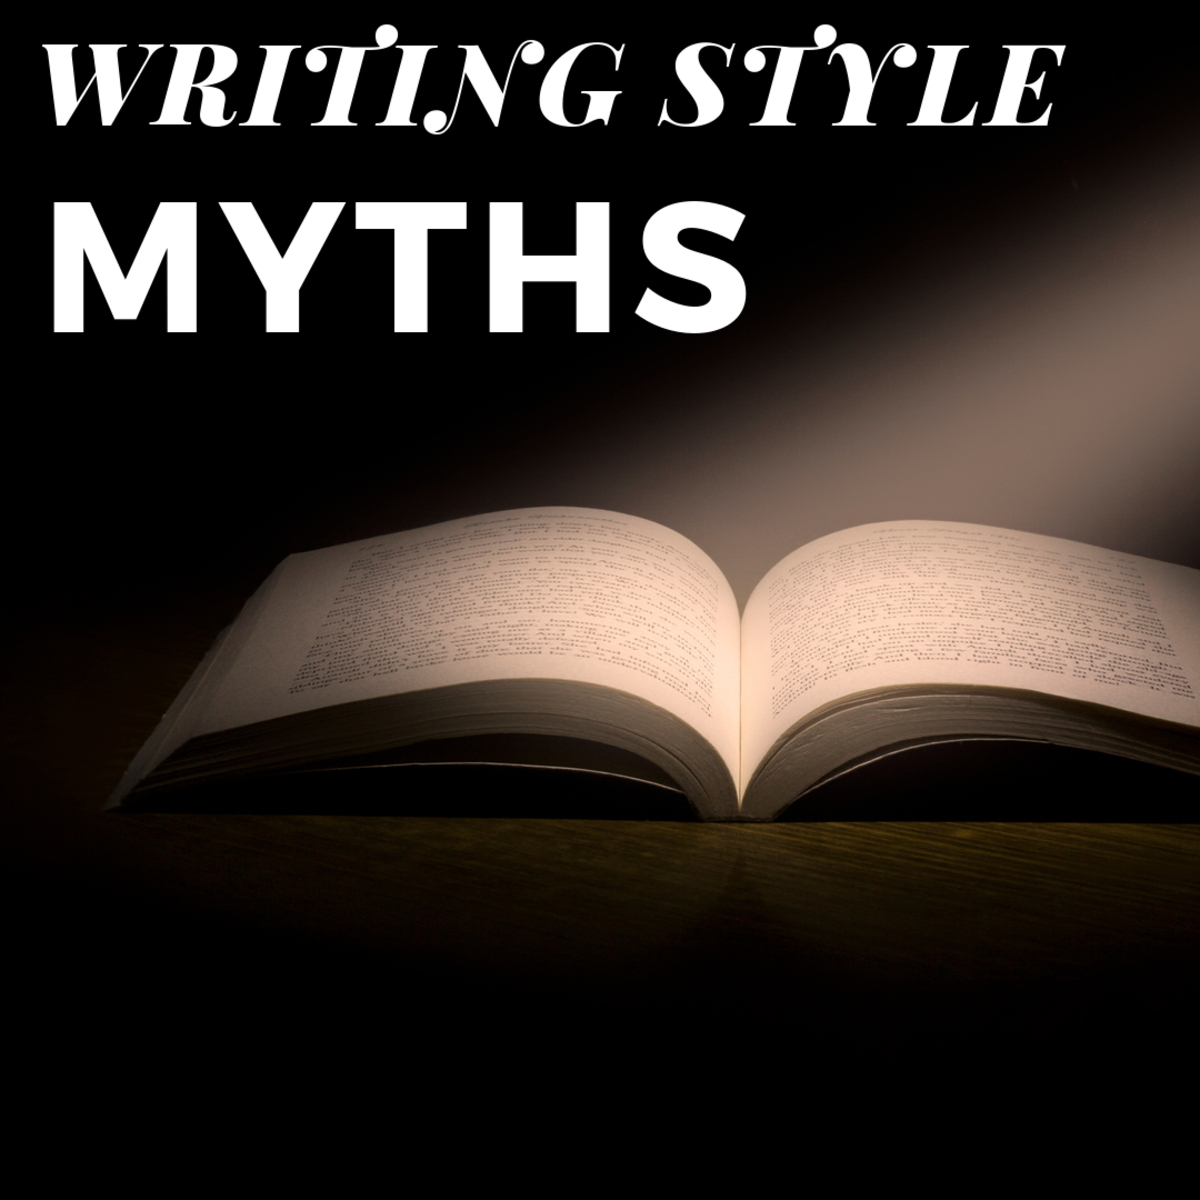 Writing Style Myths